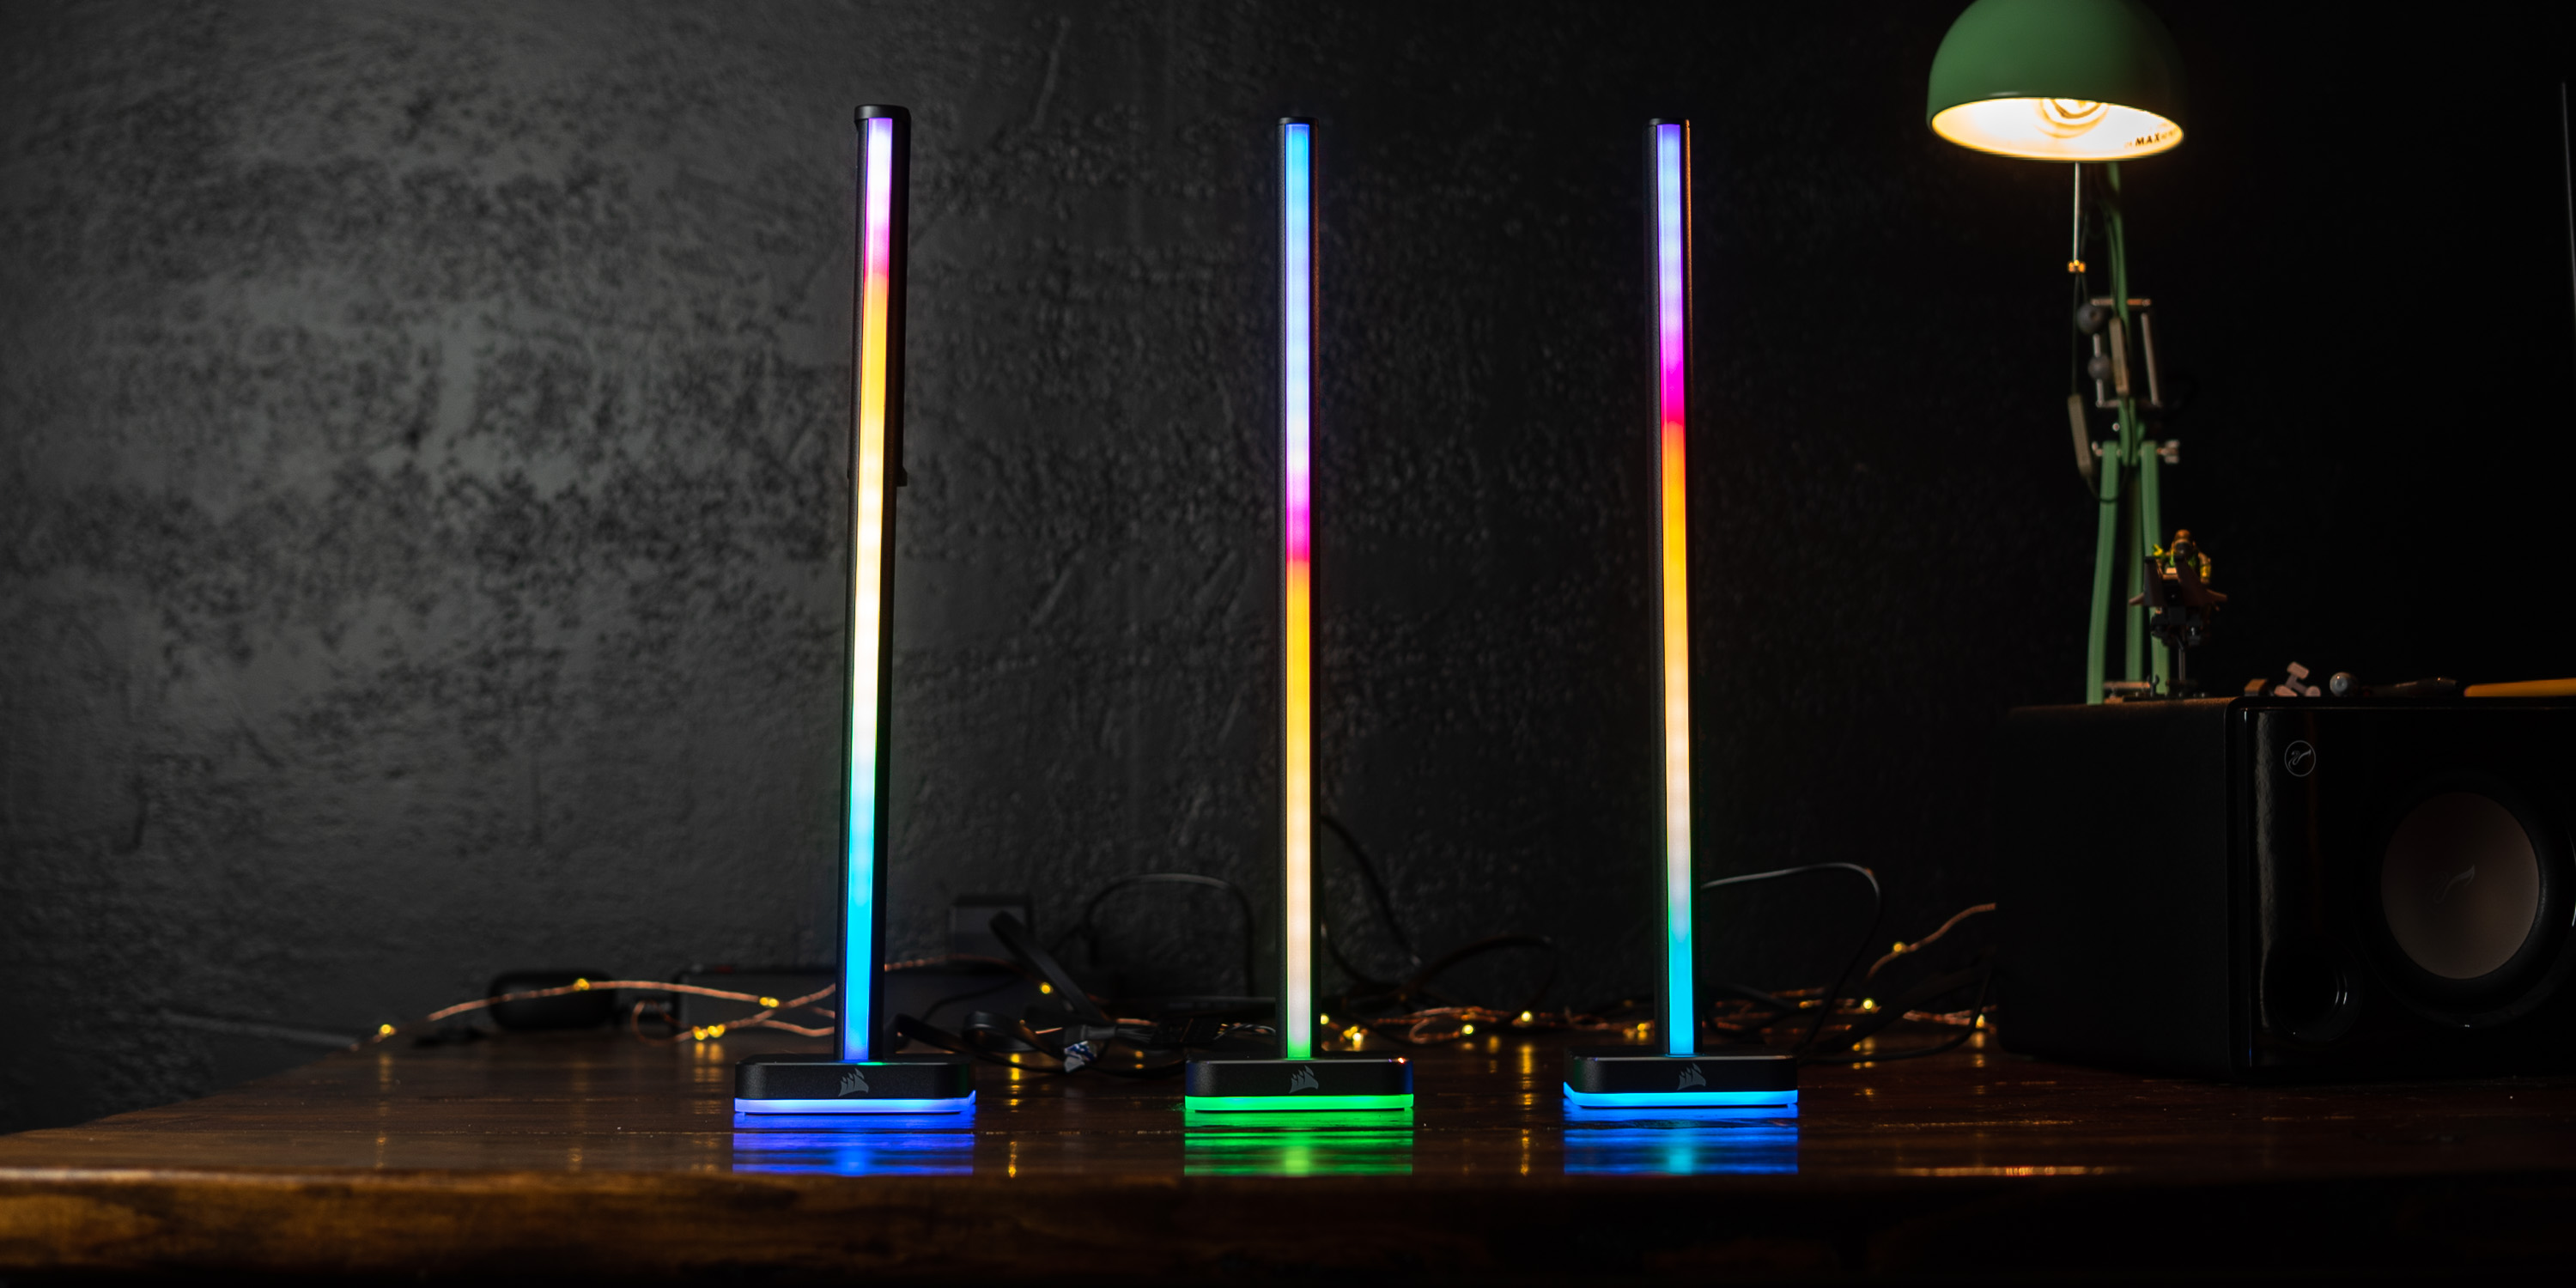 Expansion set for the Corsair LT100 RGB towers